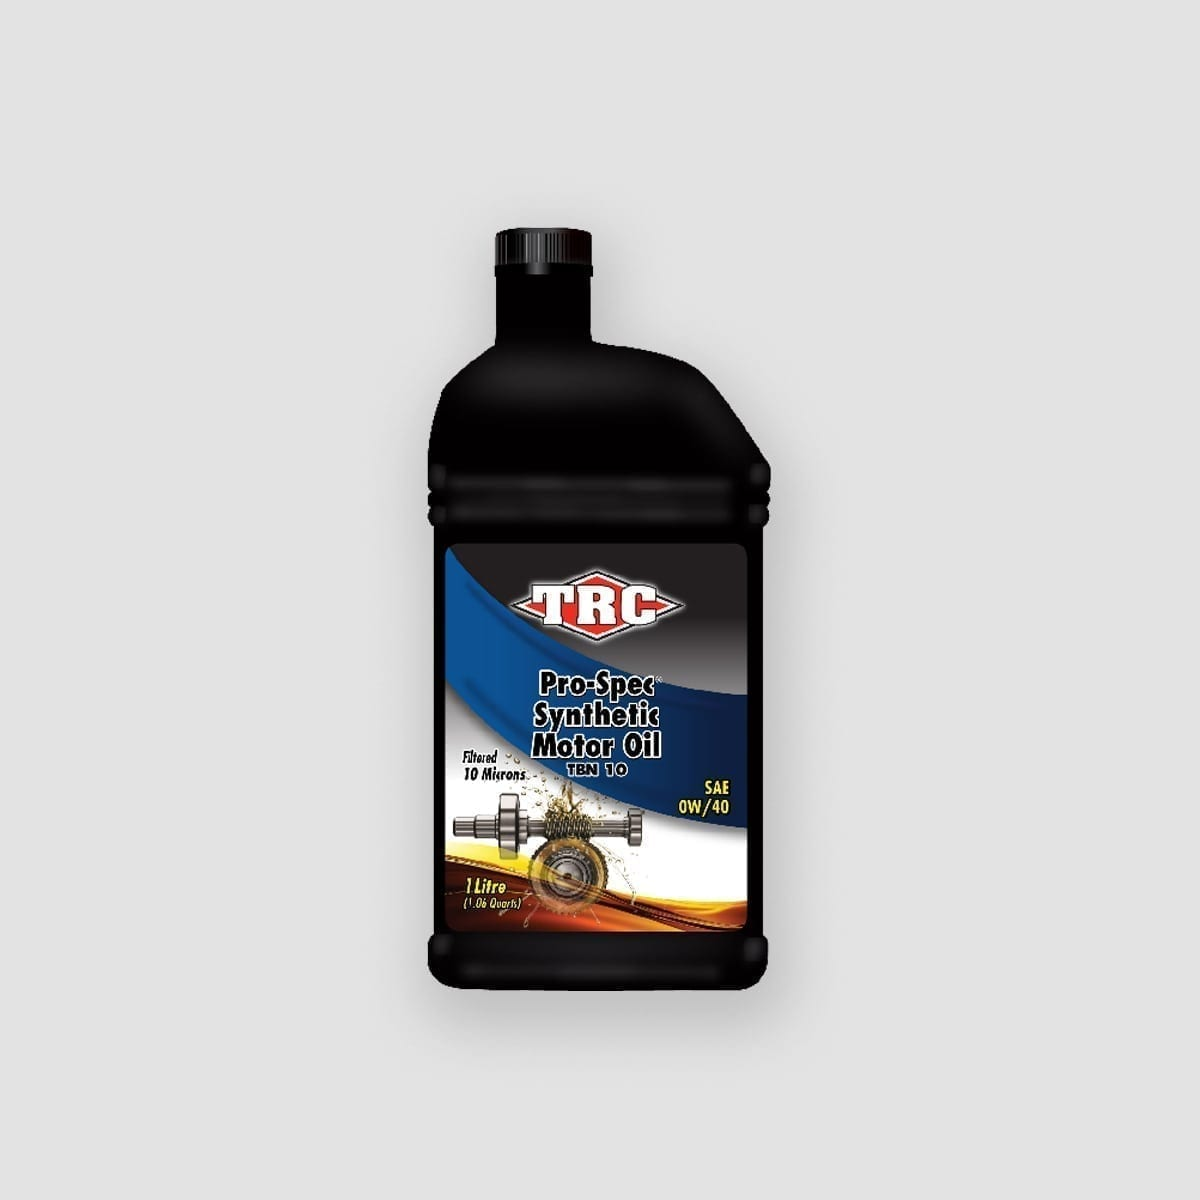 trc-pro-spec-synthetic-motor-oil-0w-40-01